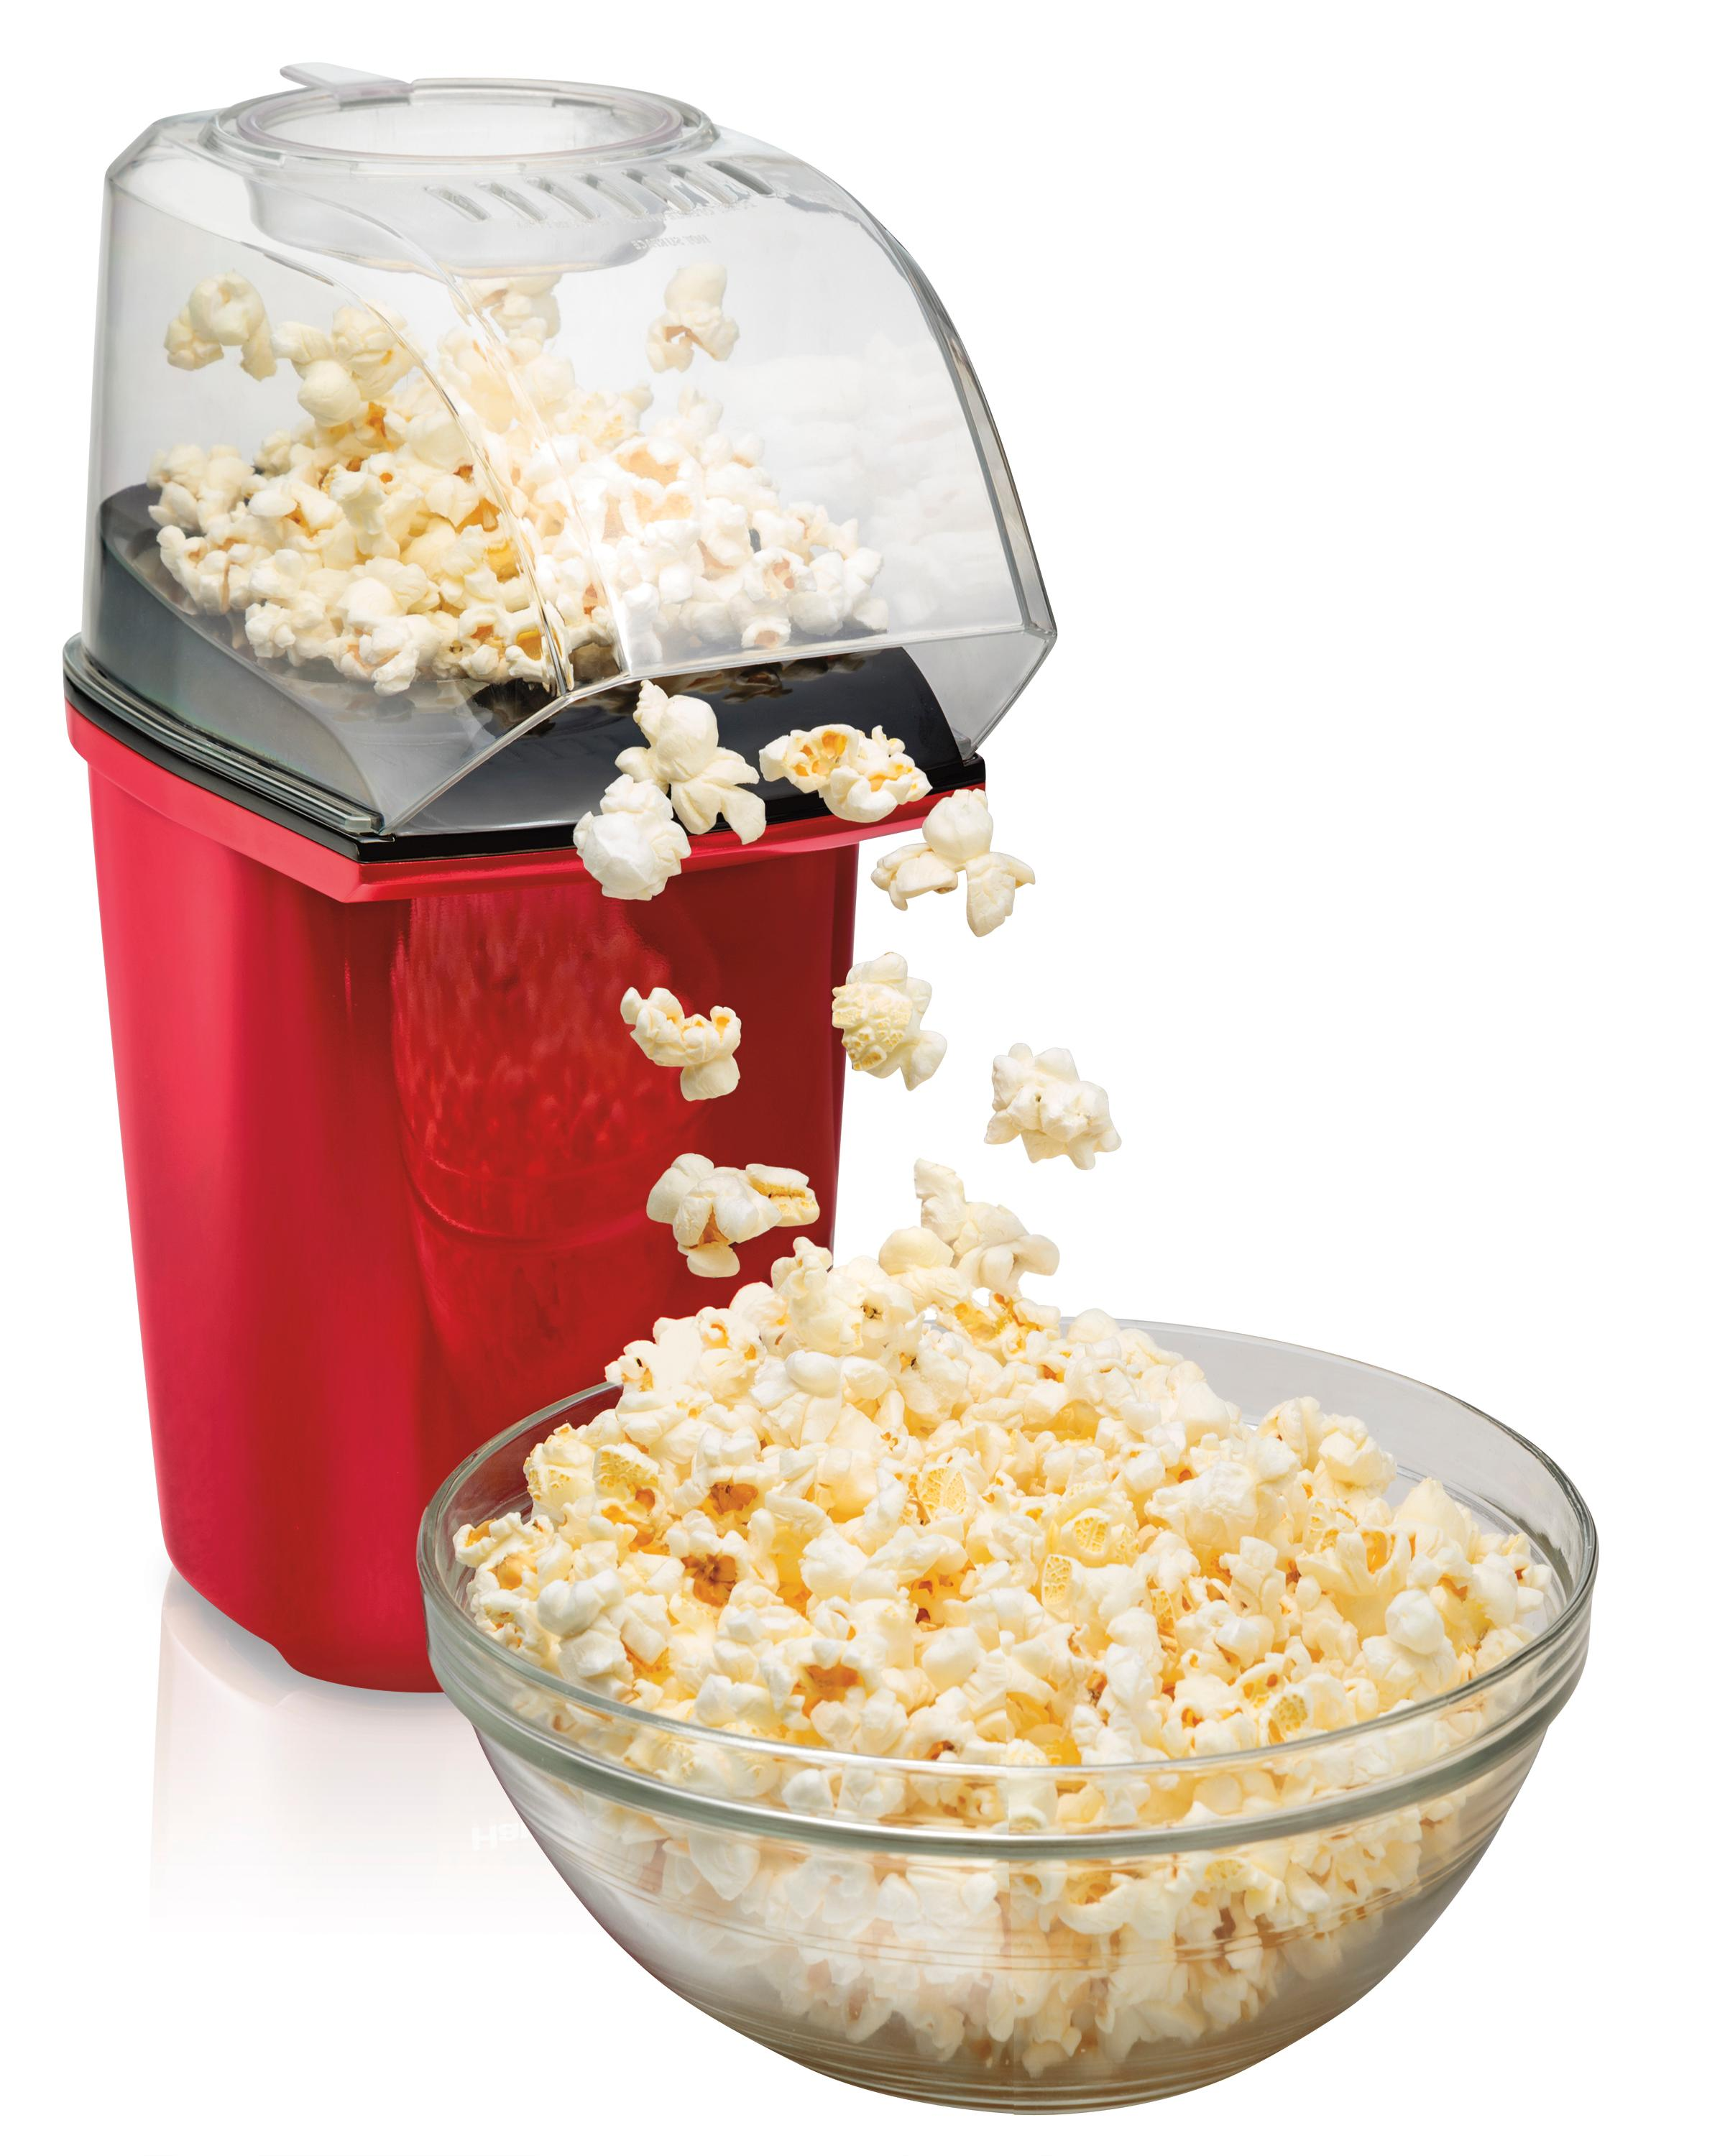 Did you know that hand-cranked stove top popcorn poppers are the best way to make movie theater style popcorn at home? It's true! The Whirley Pop Popcorn Maker is a favorite for families and popcorn lovers alike who adore the taste of hot, fresh popcorn straight from the cinema – without having to leave the kitchen! The Whirley Popcorn Popper is simple and easy to use – it's fun, too!